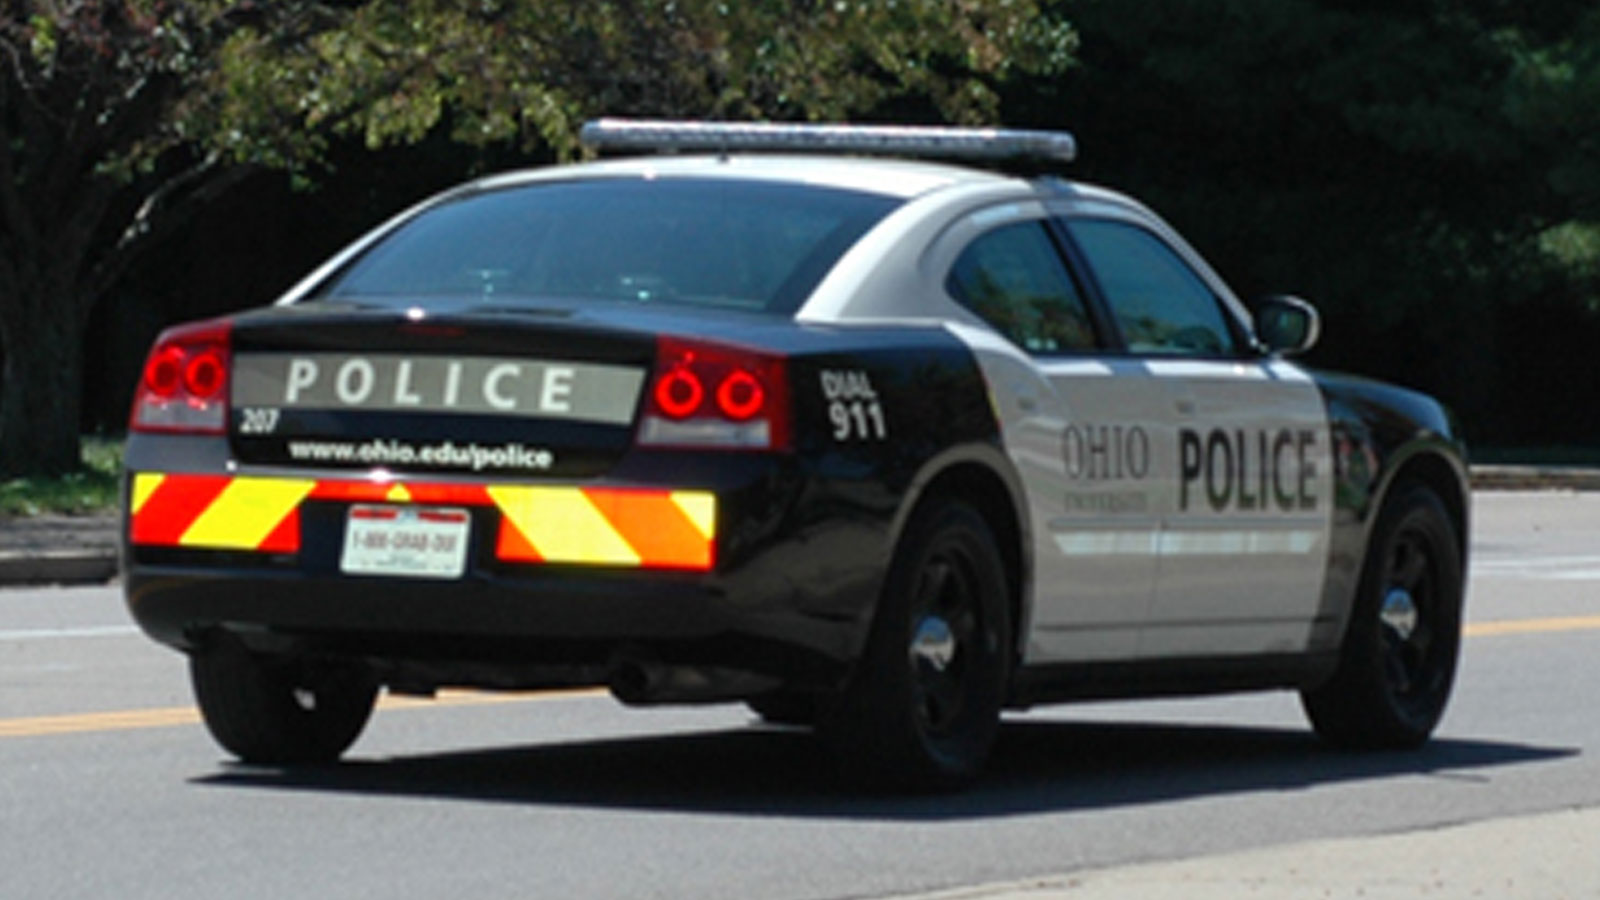 Ohio University issues fourth crime alert after reported